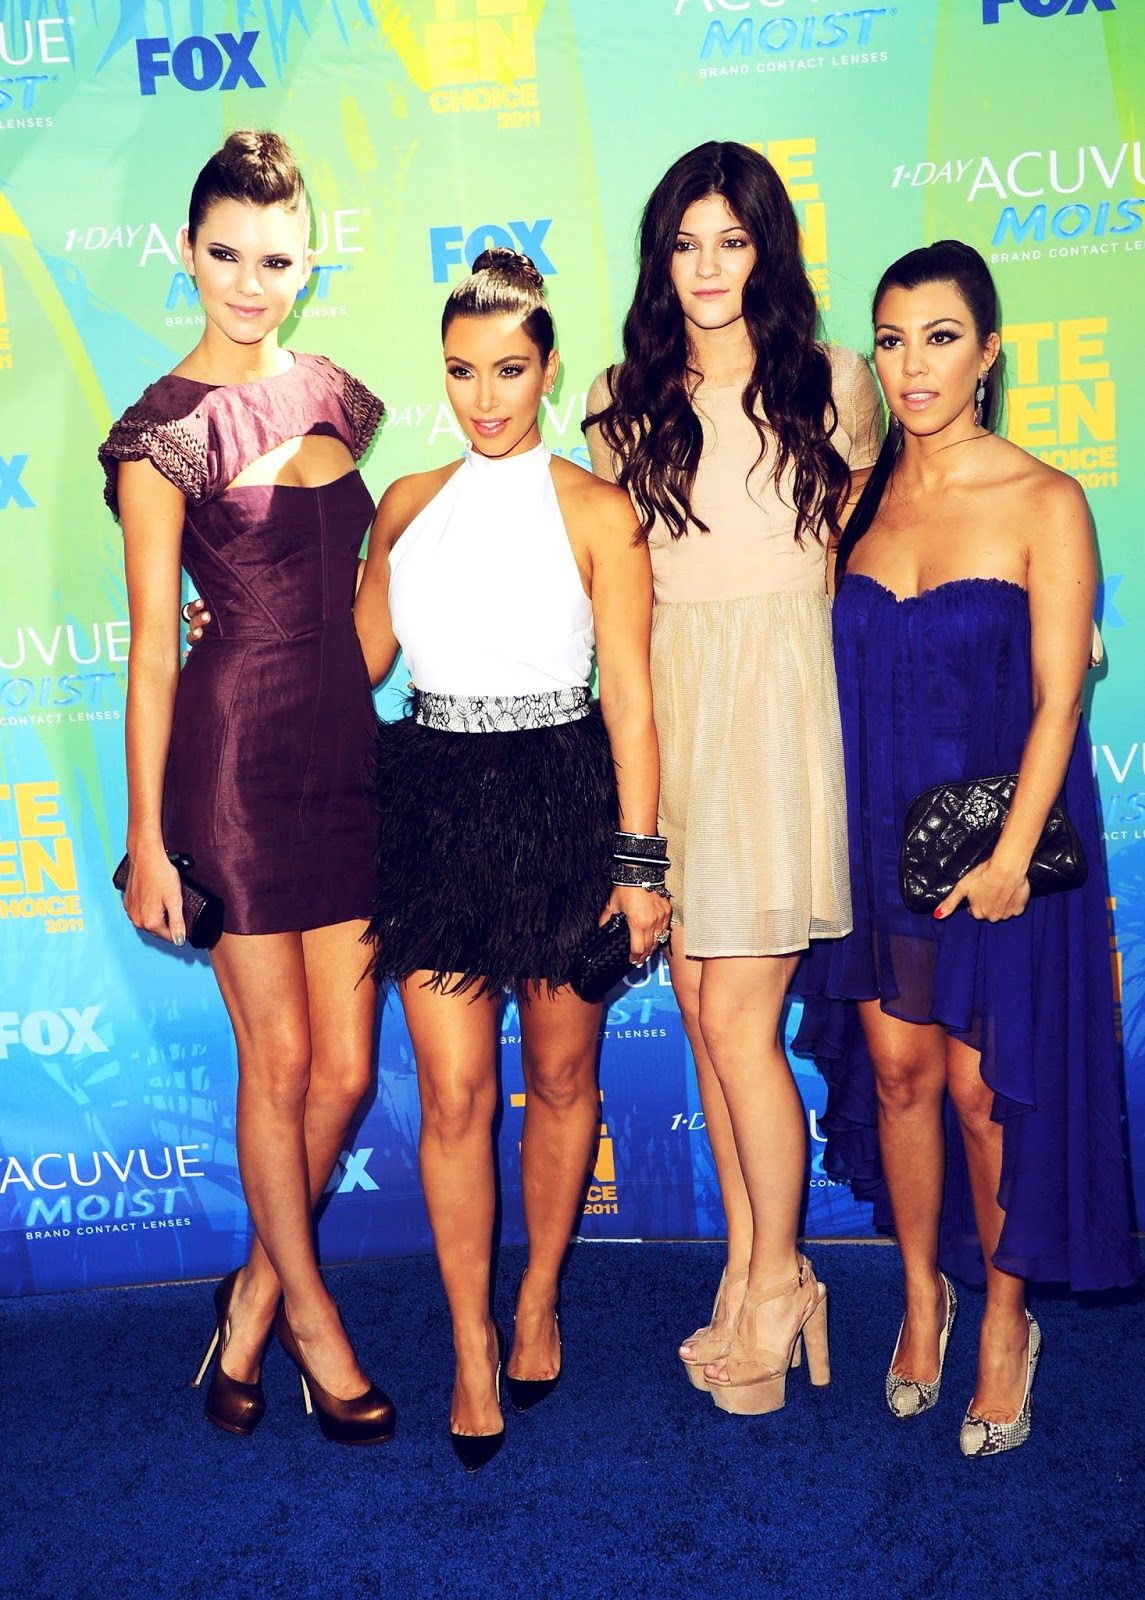 03- Teen Choice Awards in August 11, 2011